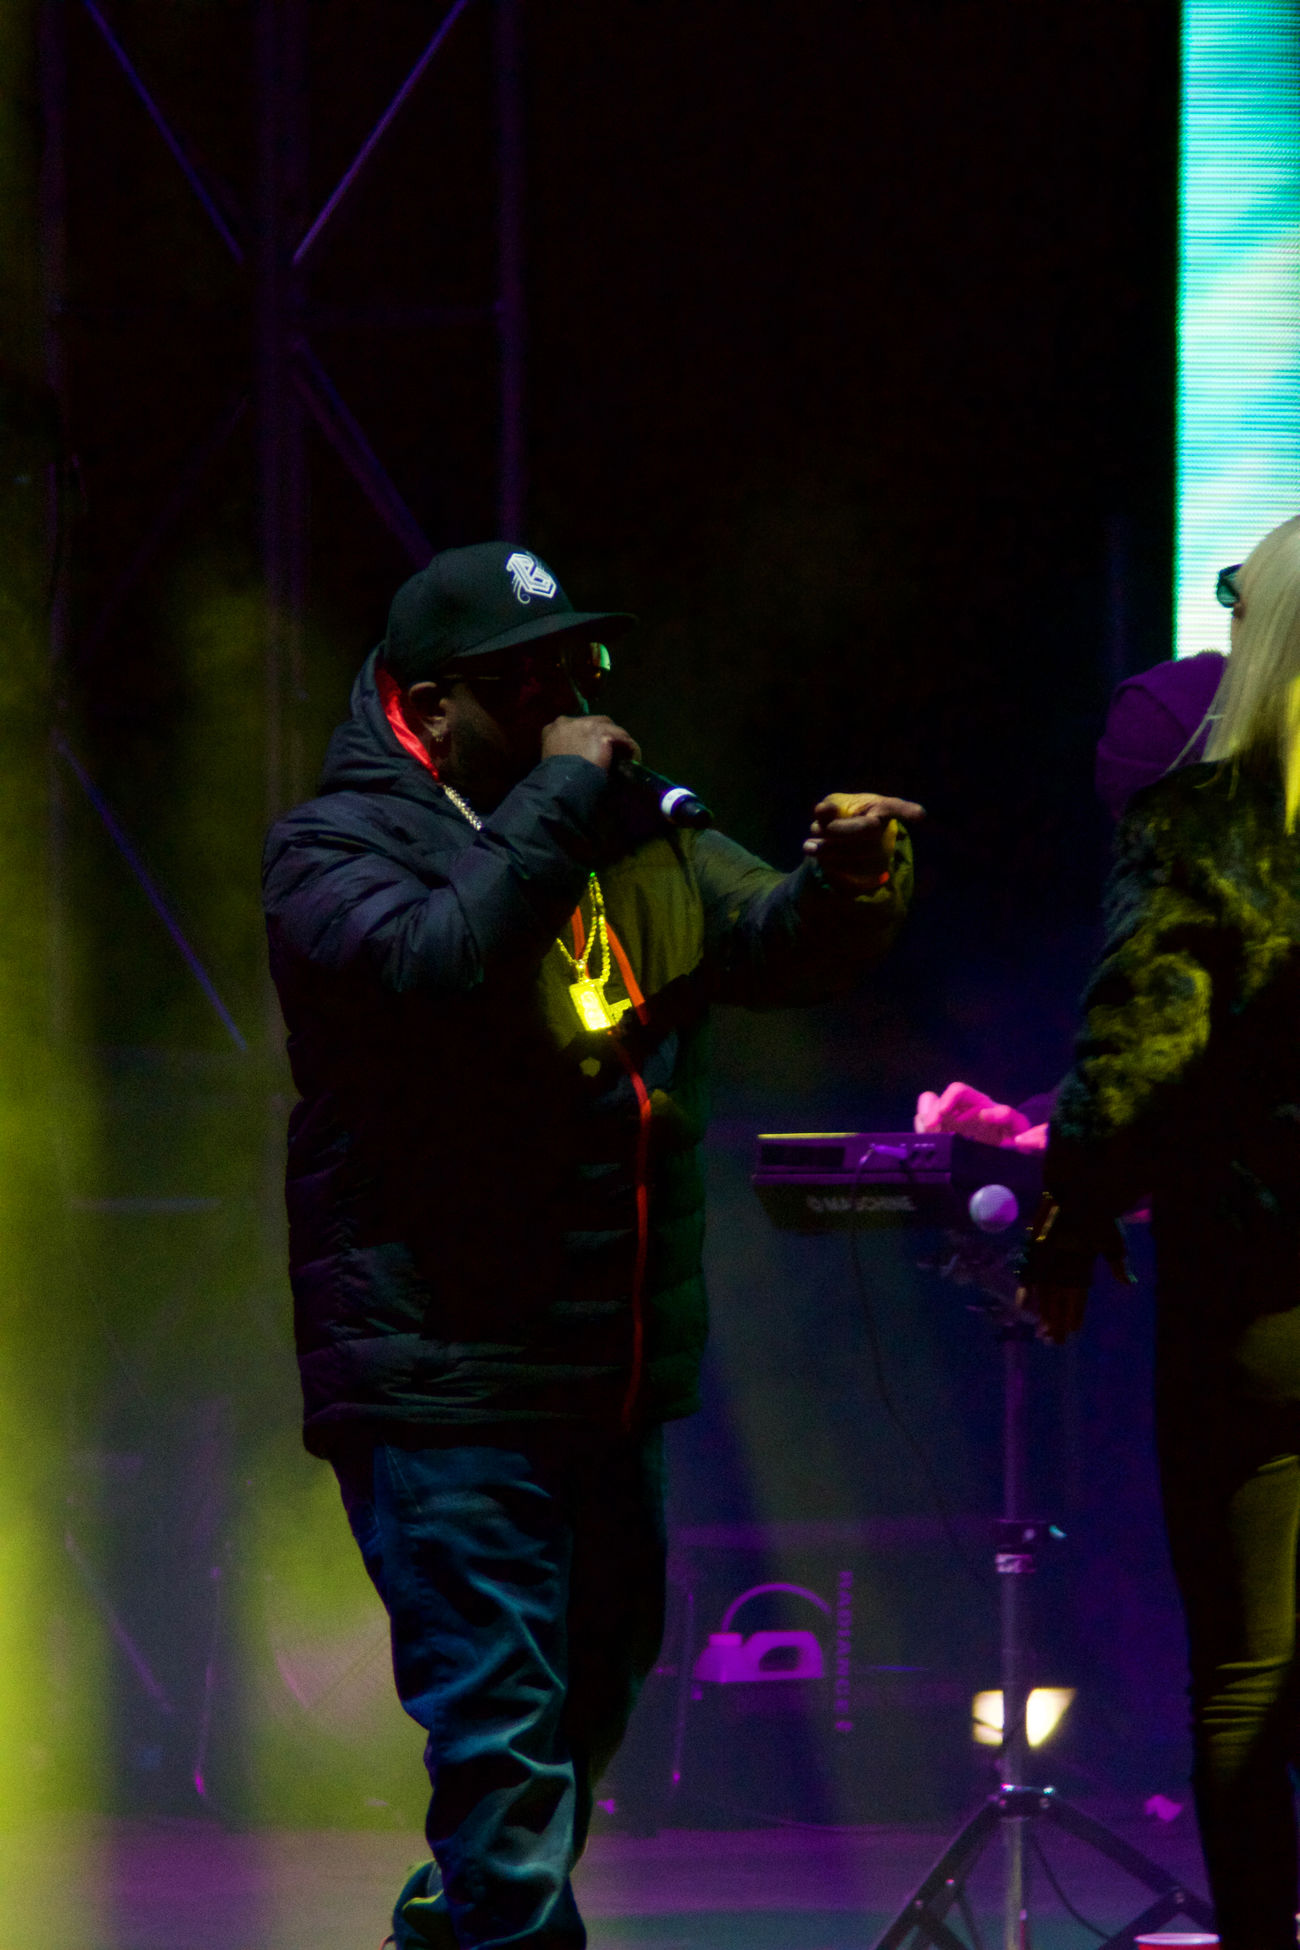 Big Grams killing it at the Burton US open Biggrams Burtonusopen Concert Fog HipHop Lowlight Night Outdoor Concert Outdoors Rap Winter